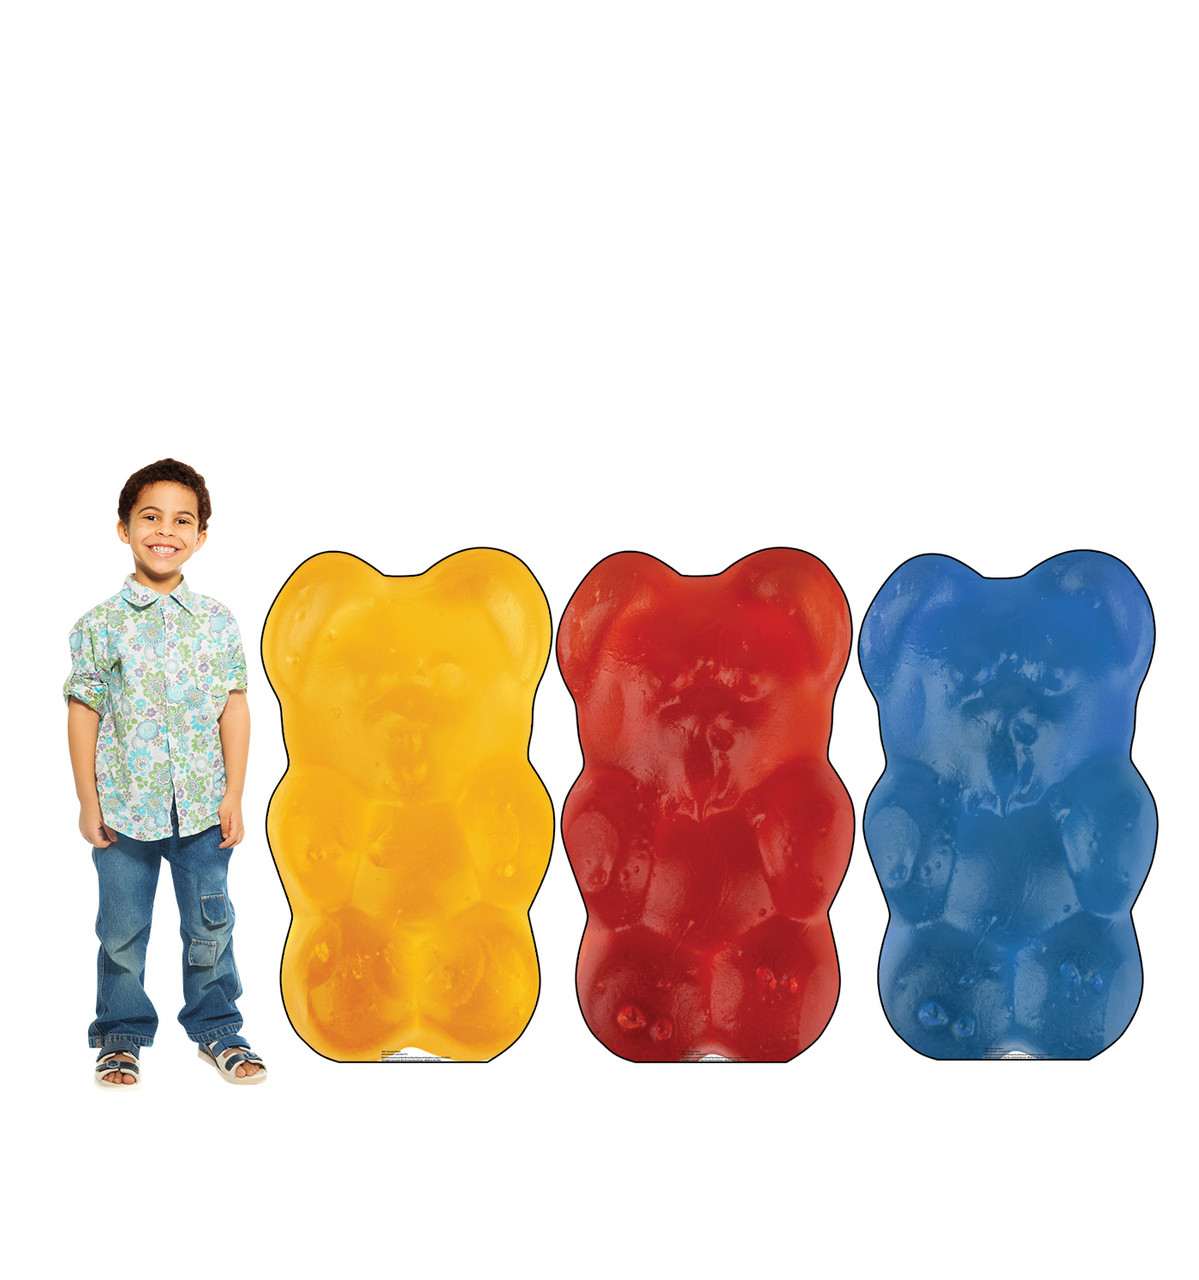 Life-size cardboard standee of Gummy Bears (3 Pack) with model.